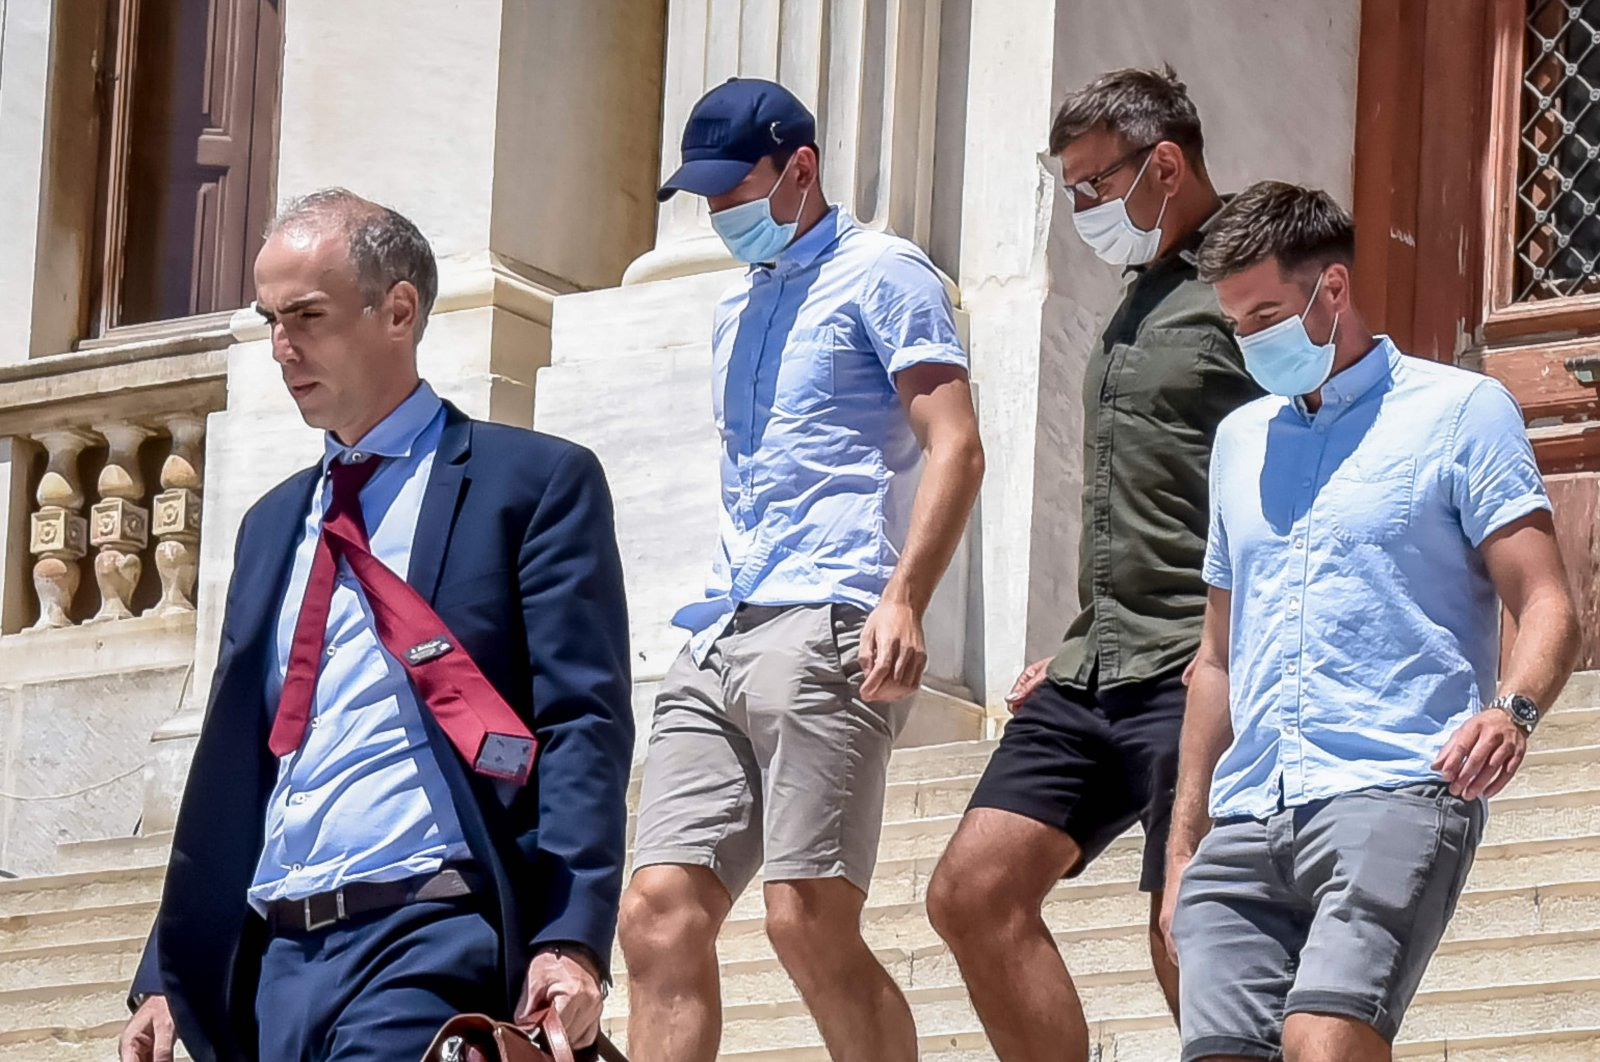 Manchester United football team captain Harry Maguire (2nd L) leaves a courthouse on the Greek island of Syros, the administrative hub of the Cycladic island group that includes Mykonos on August 22, 2020.(AFP Photo)